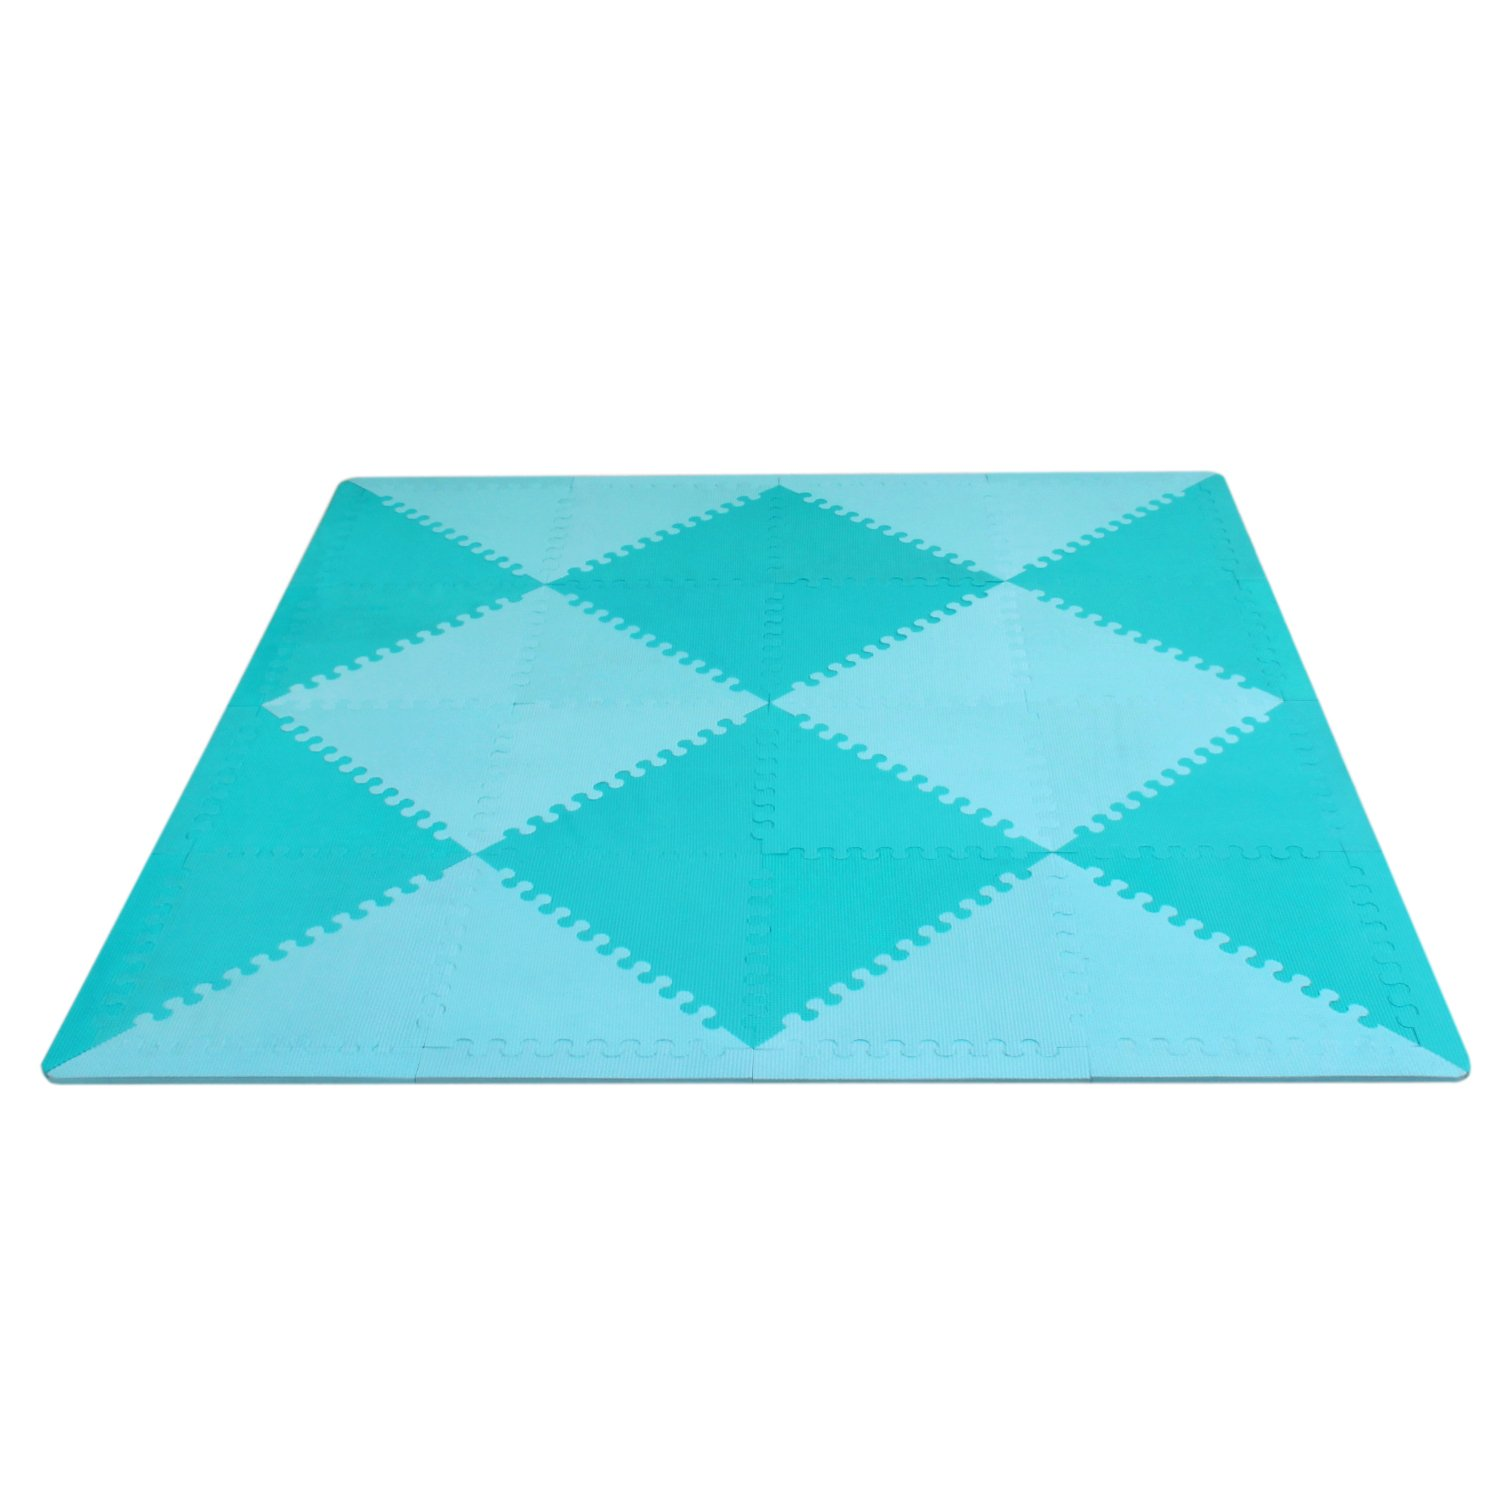 meiqicool Baby Crawling Mat Puzzle Play Foam Tiles Non Toxic Playmat Floor Mats for Tummy Time,3510LV